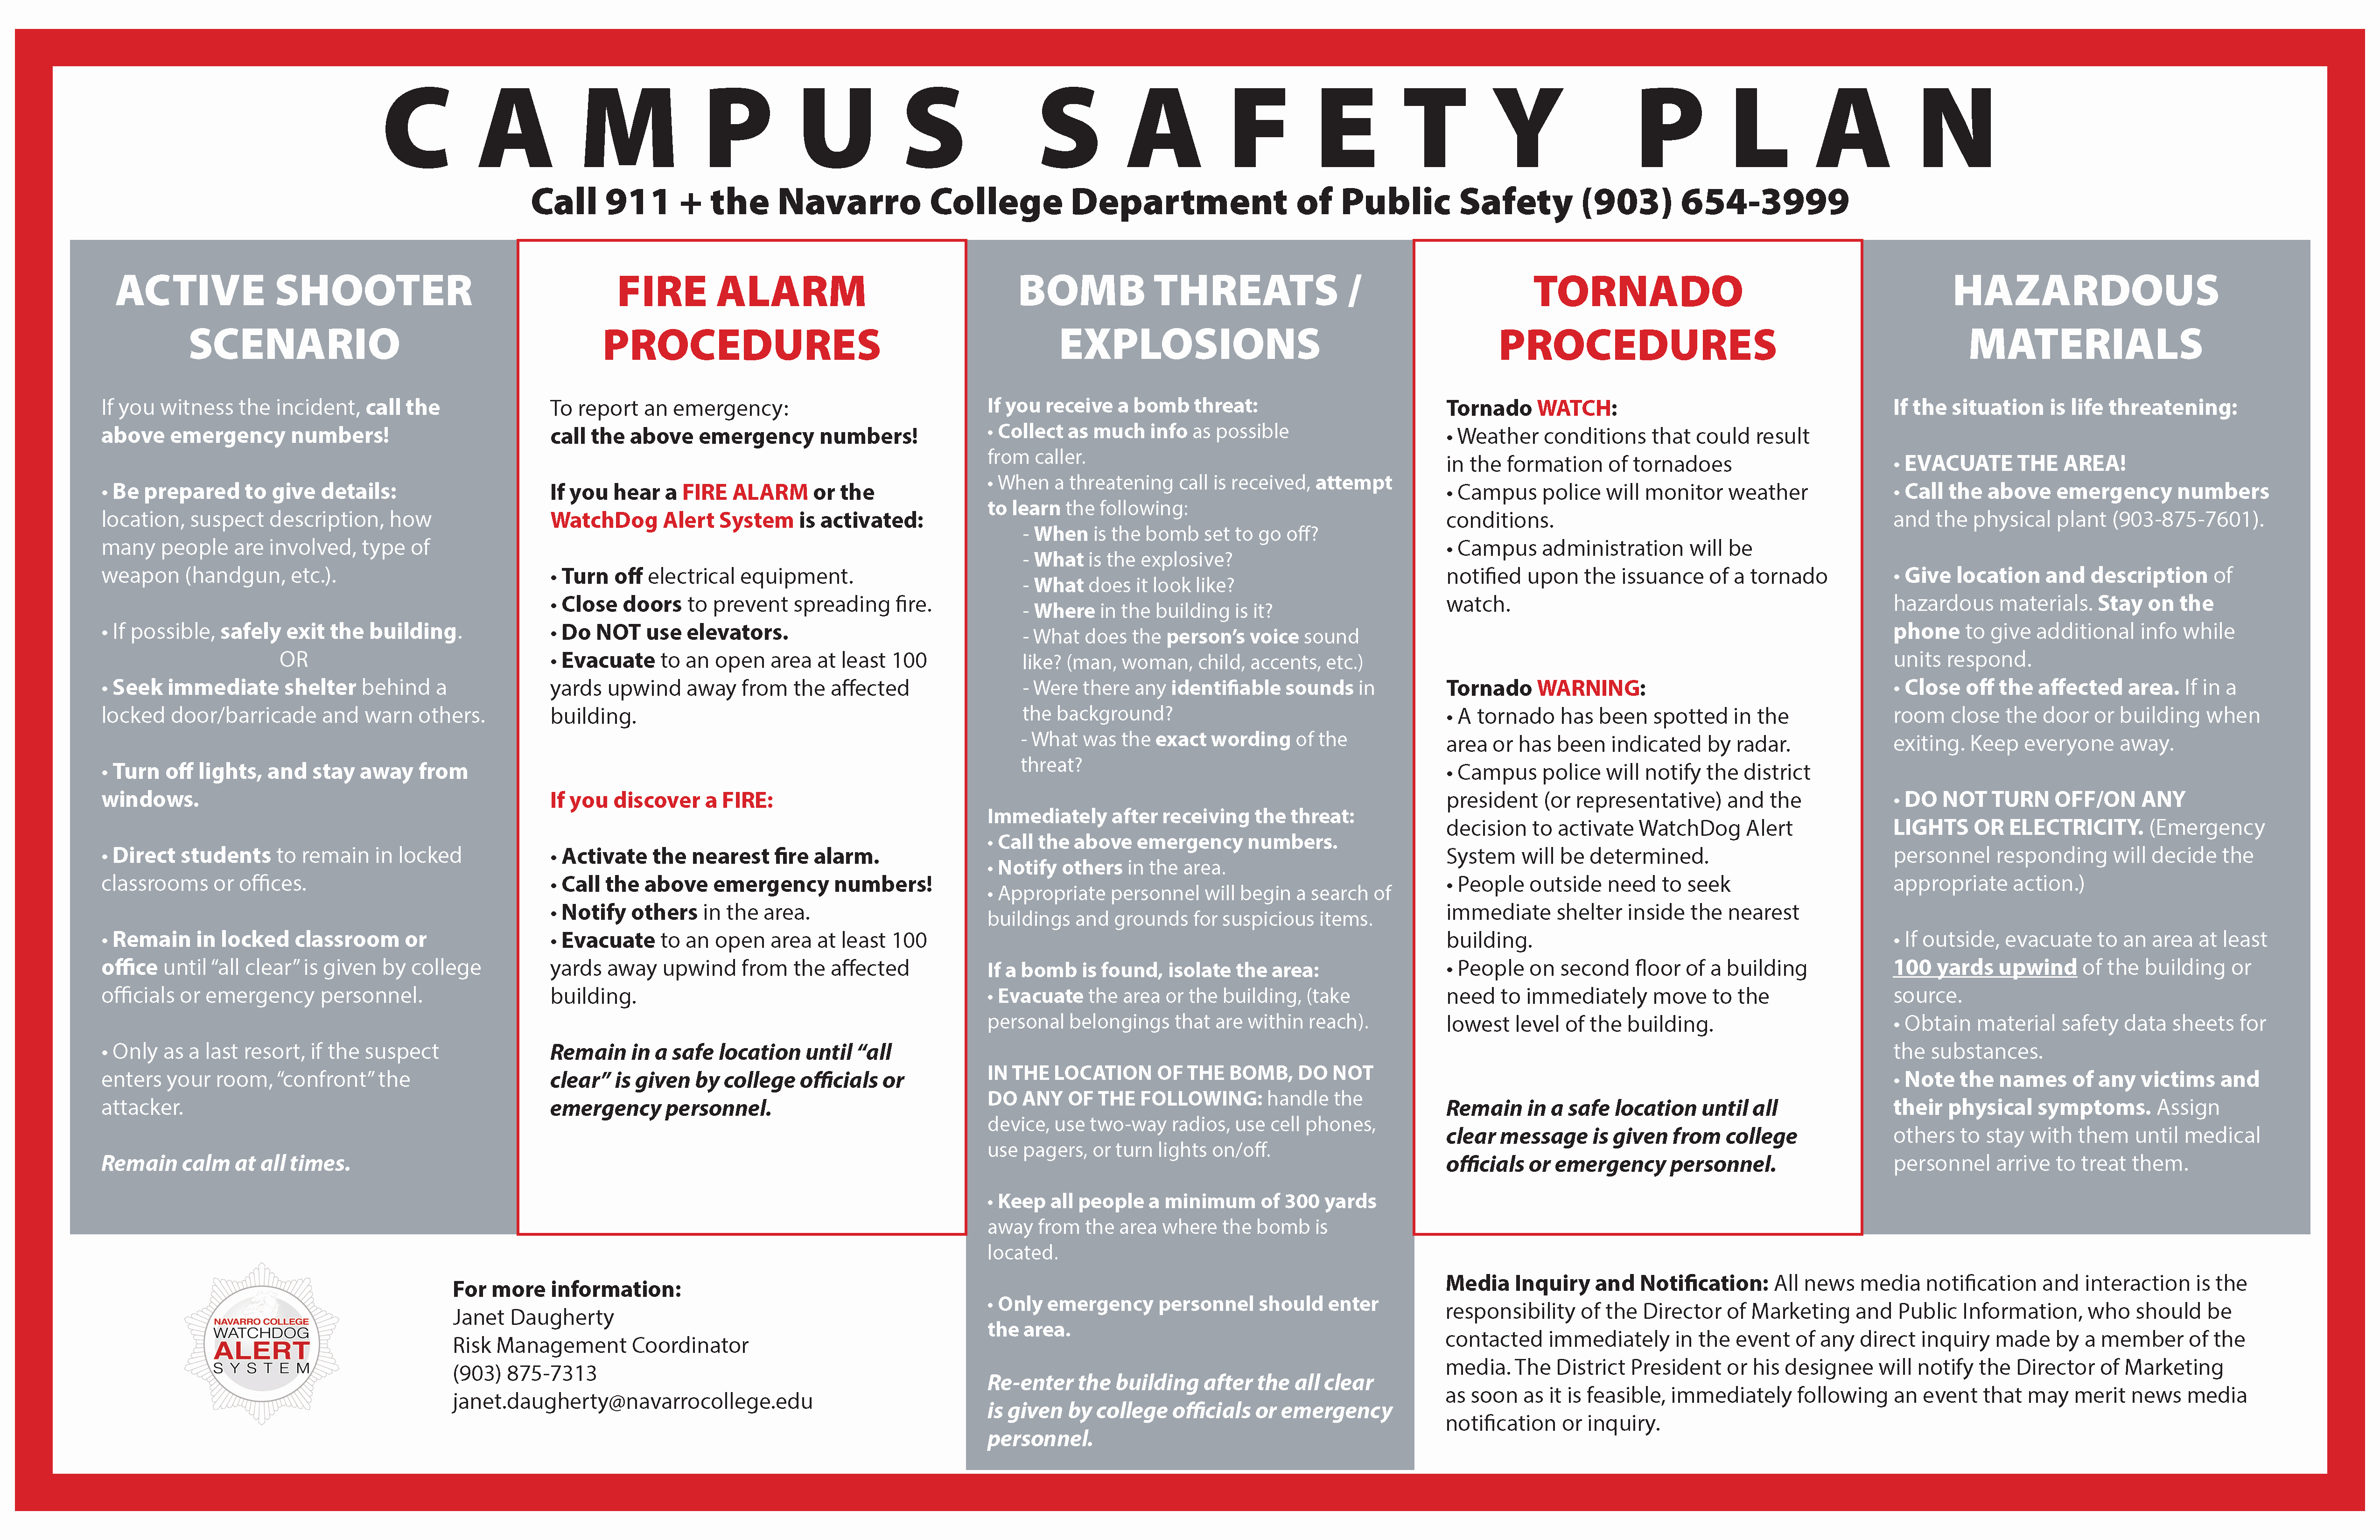 Active Shooter Plan Template Inspirational Navarro College